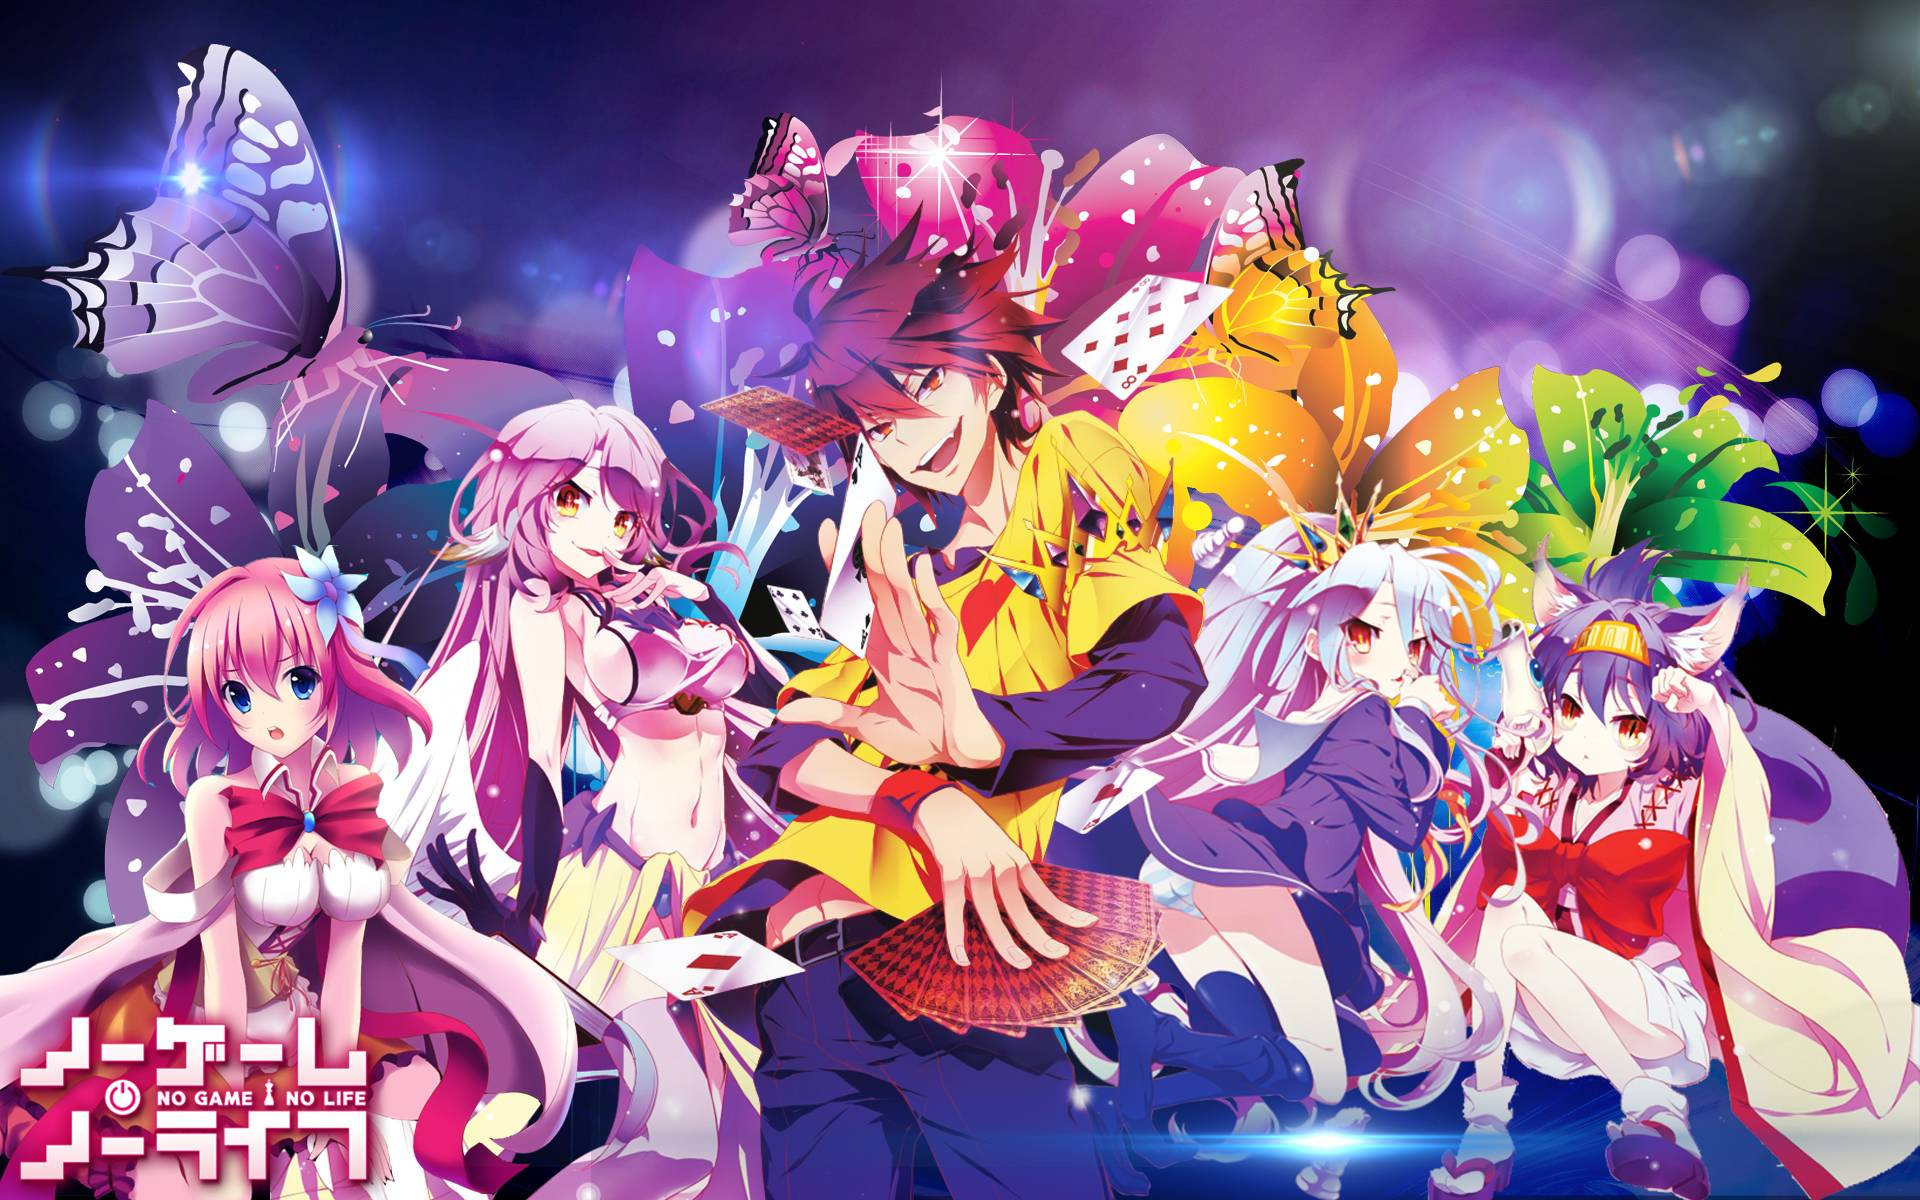 4k Anime No Game No Life Wallpapers Wallpaper Cave